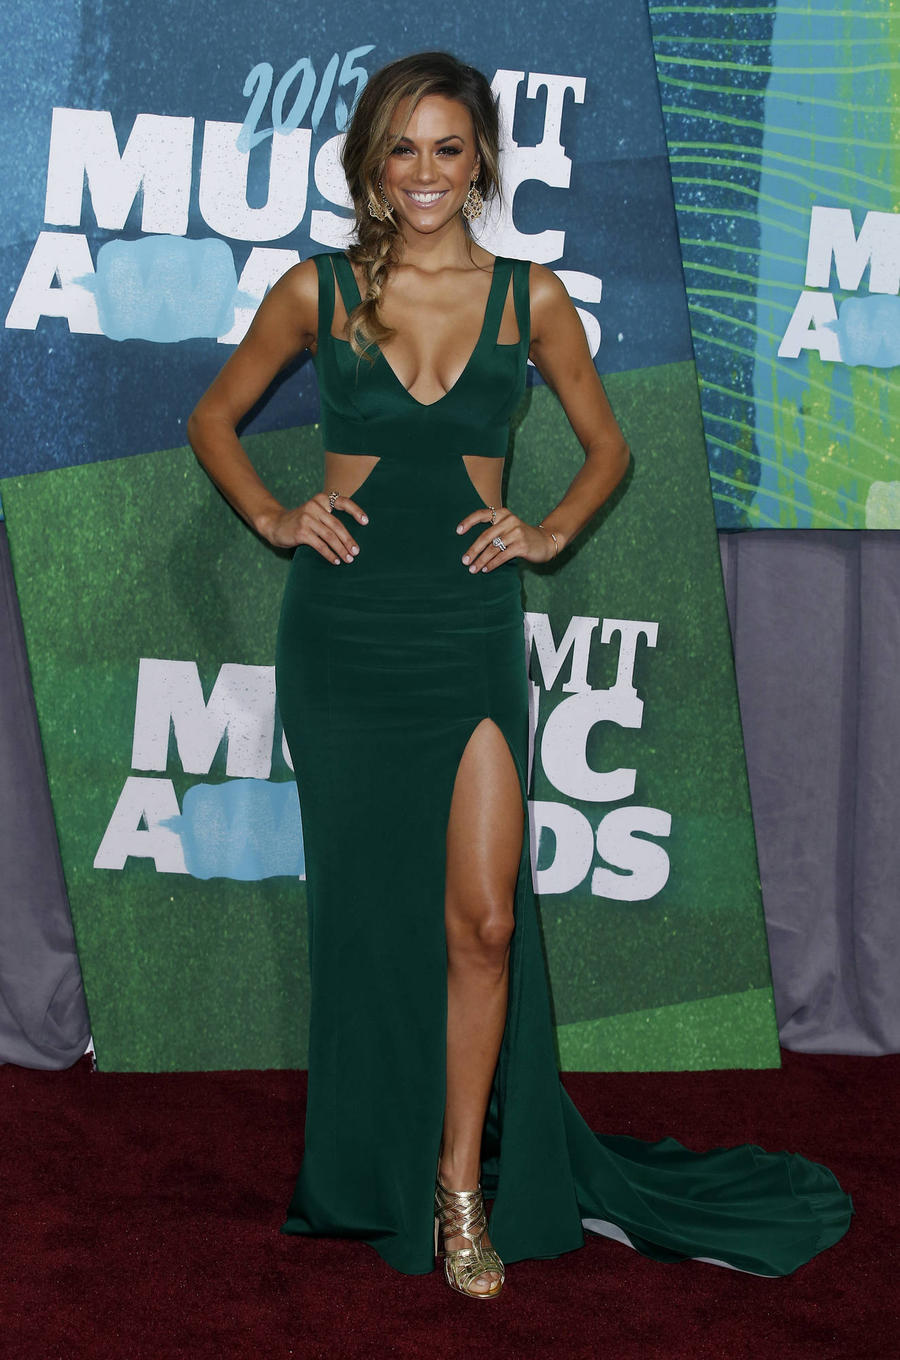 Singer Jana Kramer Starts The Week Off With A New Baby And An Acm Award Nomination